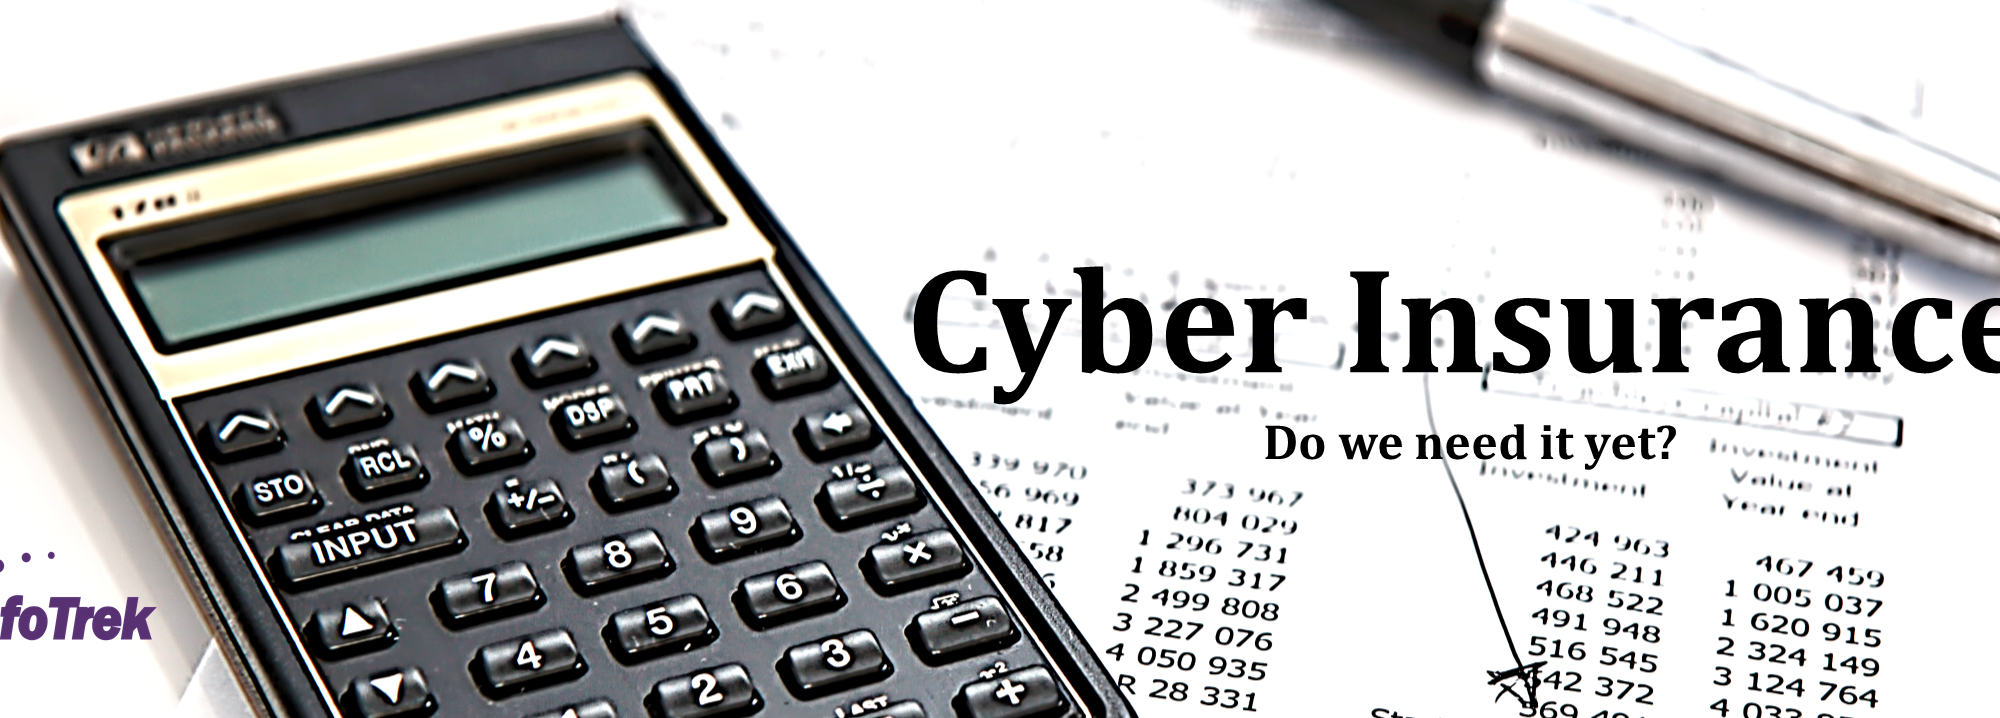 calculator, pen, and calculative sheets. Cyber Insurance is something people need nowadays